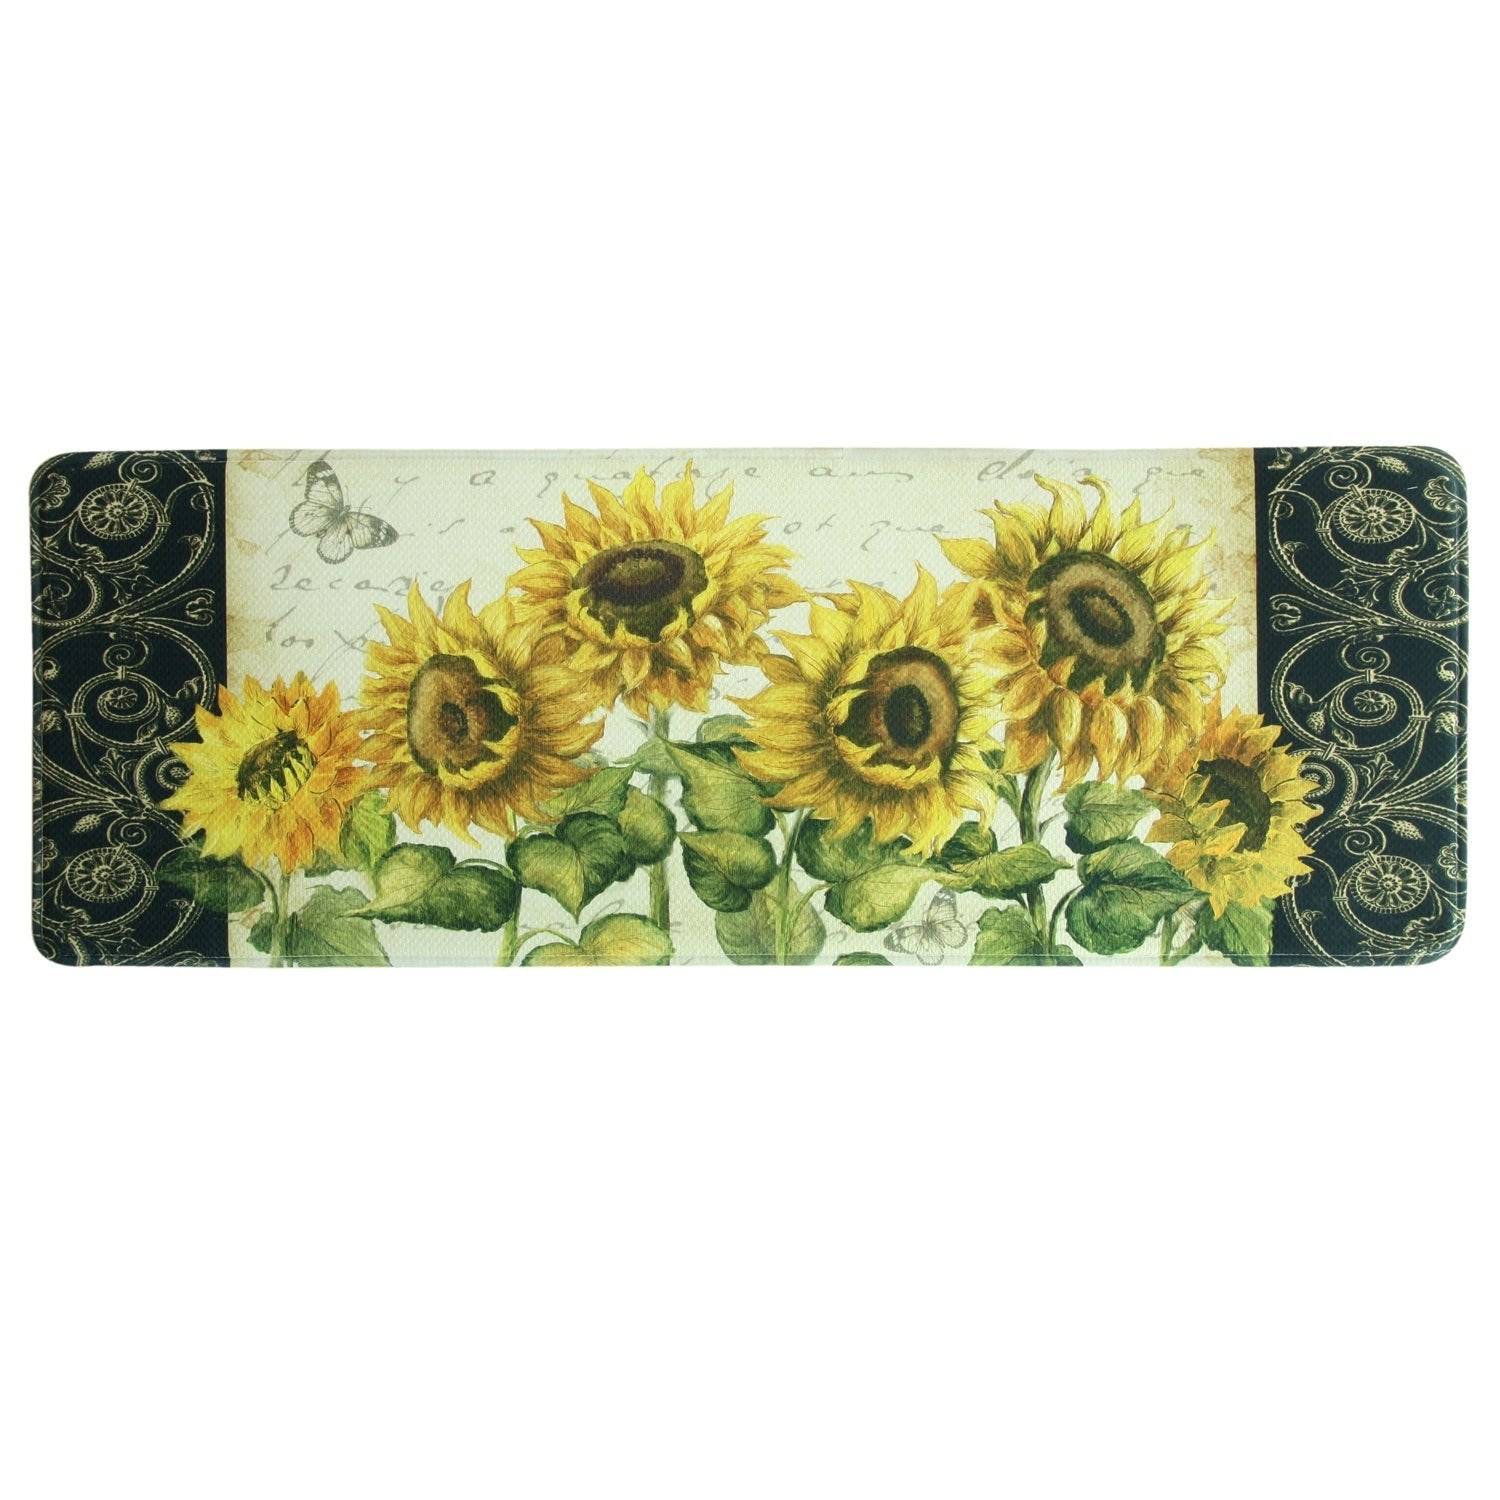 Printed Memory Foam French Sunflower Kitchen Runner By Bacova